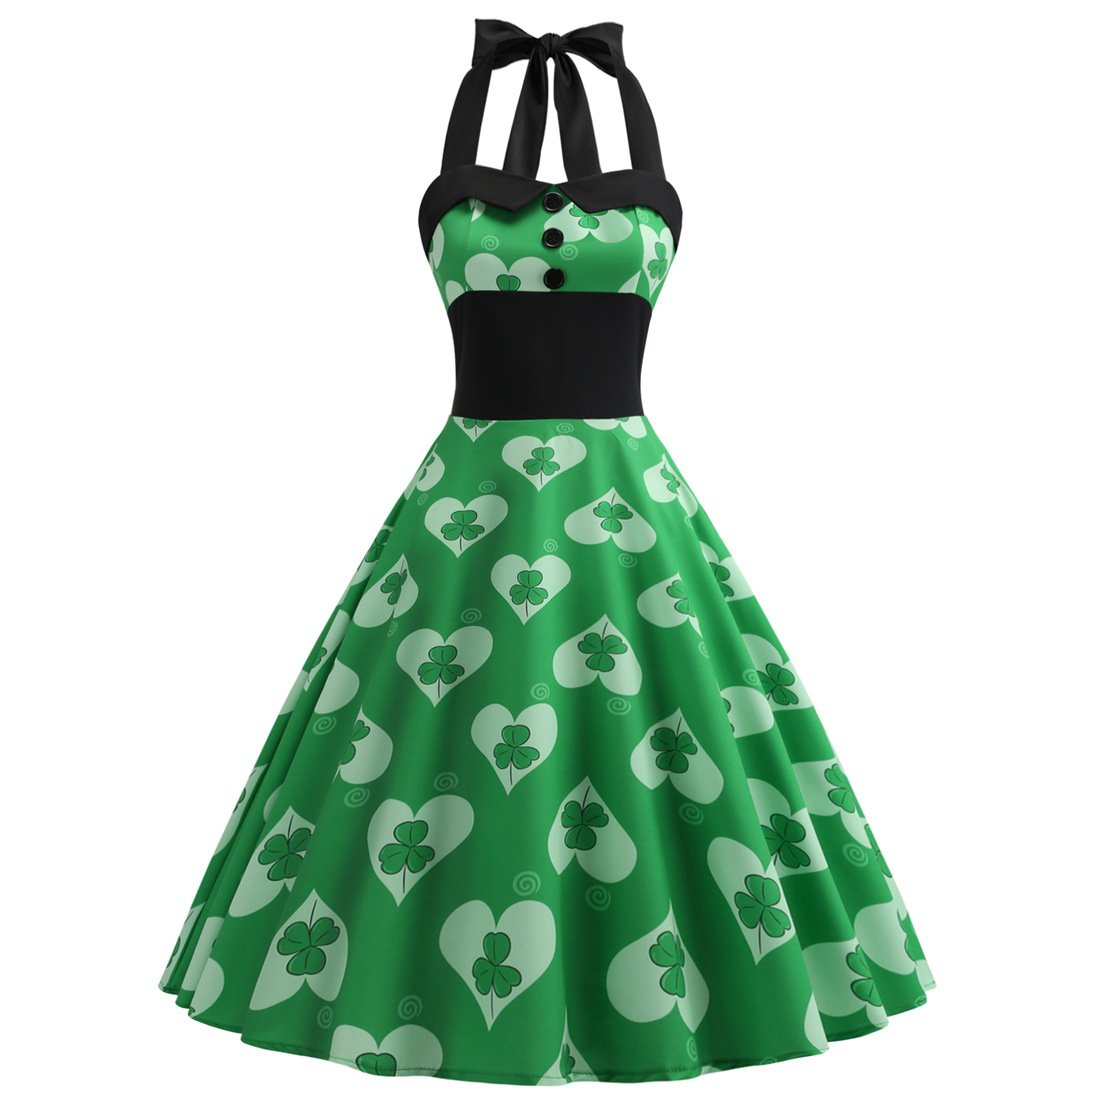 Sexy St. Patrick Party Dresses Green Ireland Celtic Shamrocks Print Super Size Retro Halter Dress